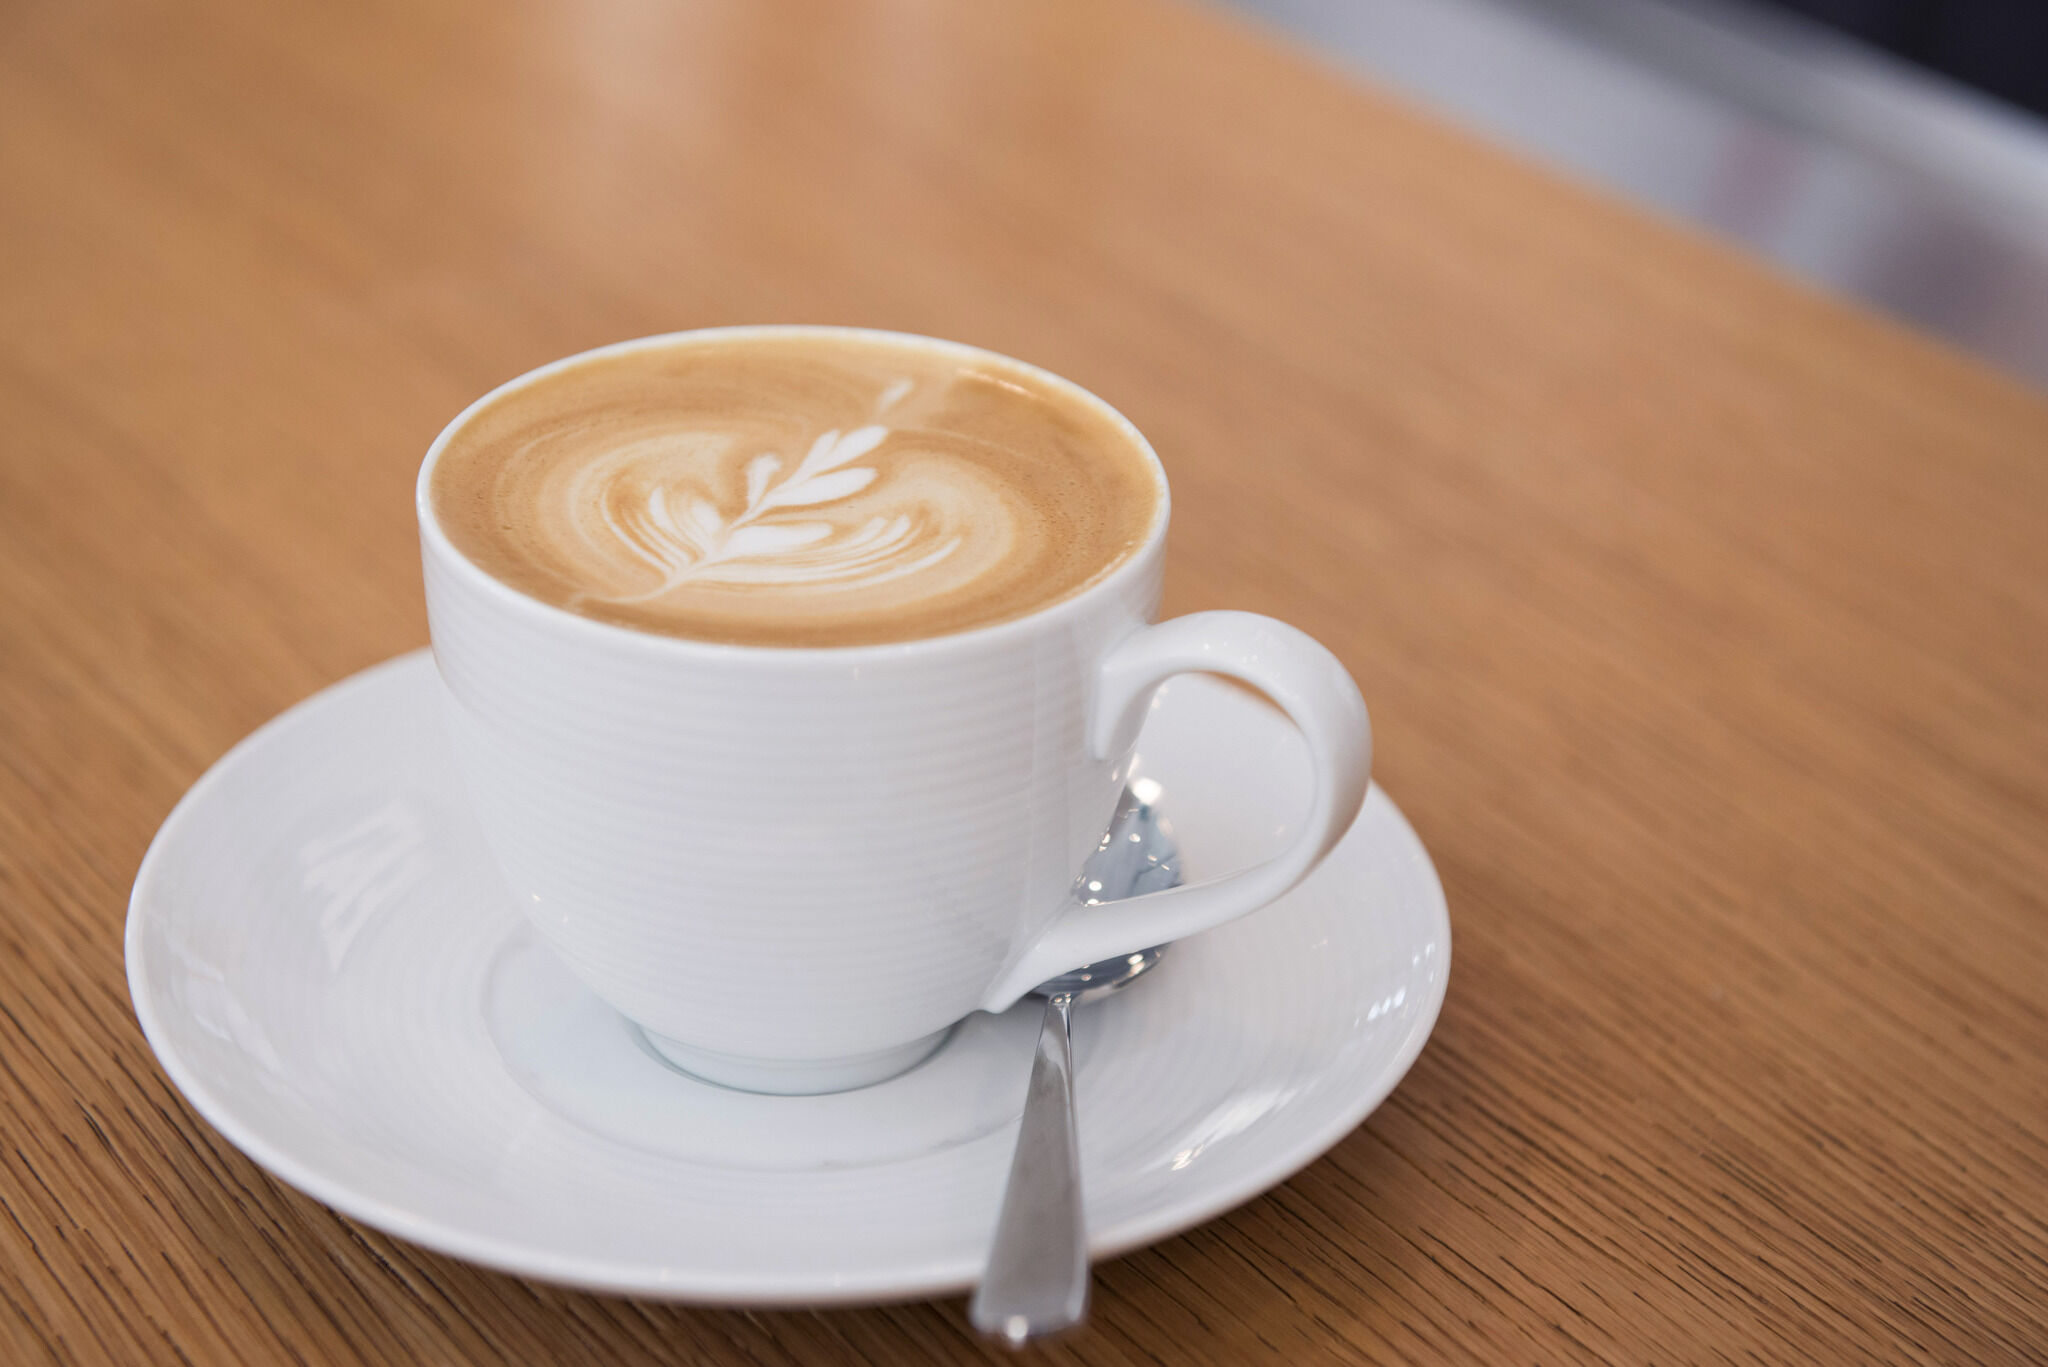 A cup of coffee in a white mug and saucer on a wooden table